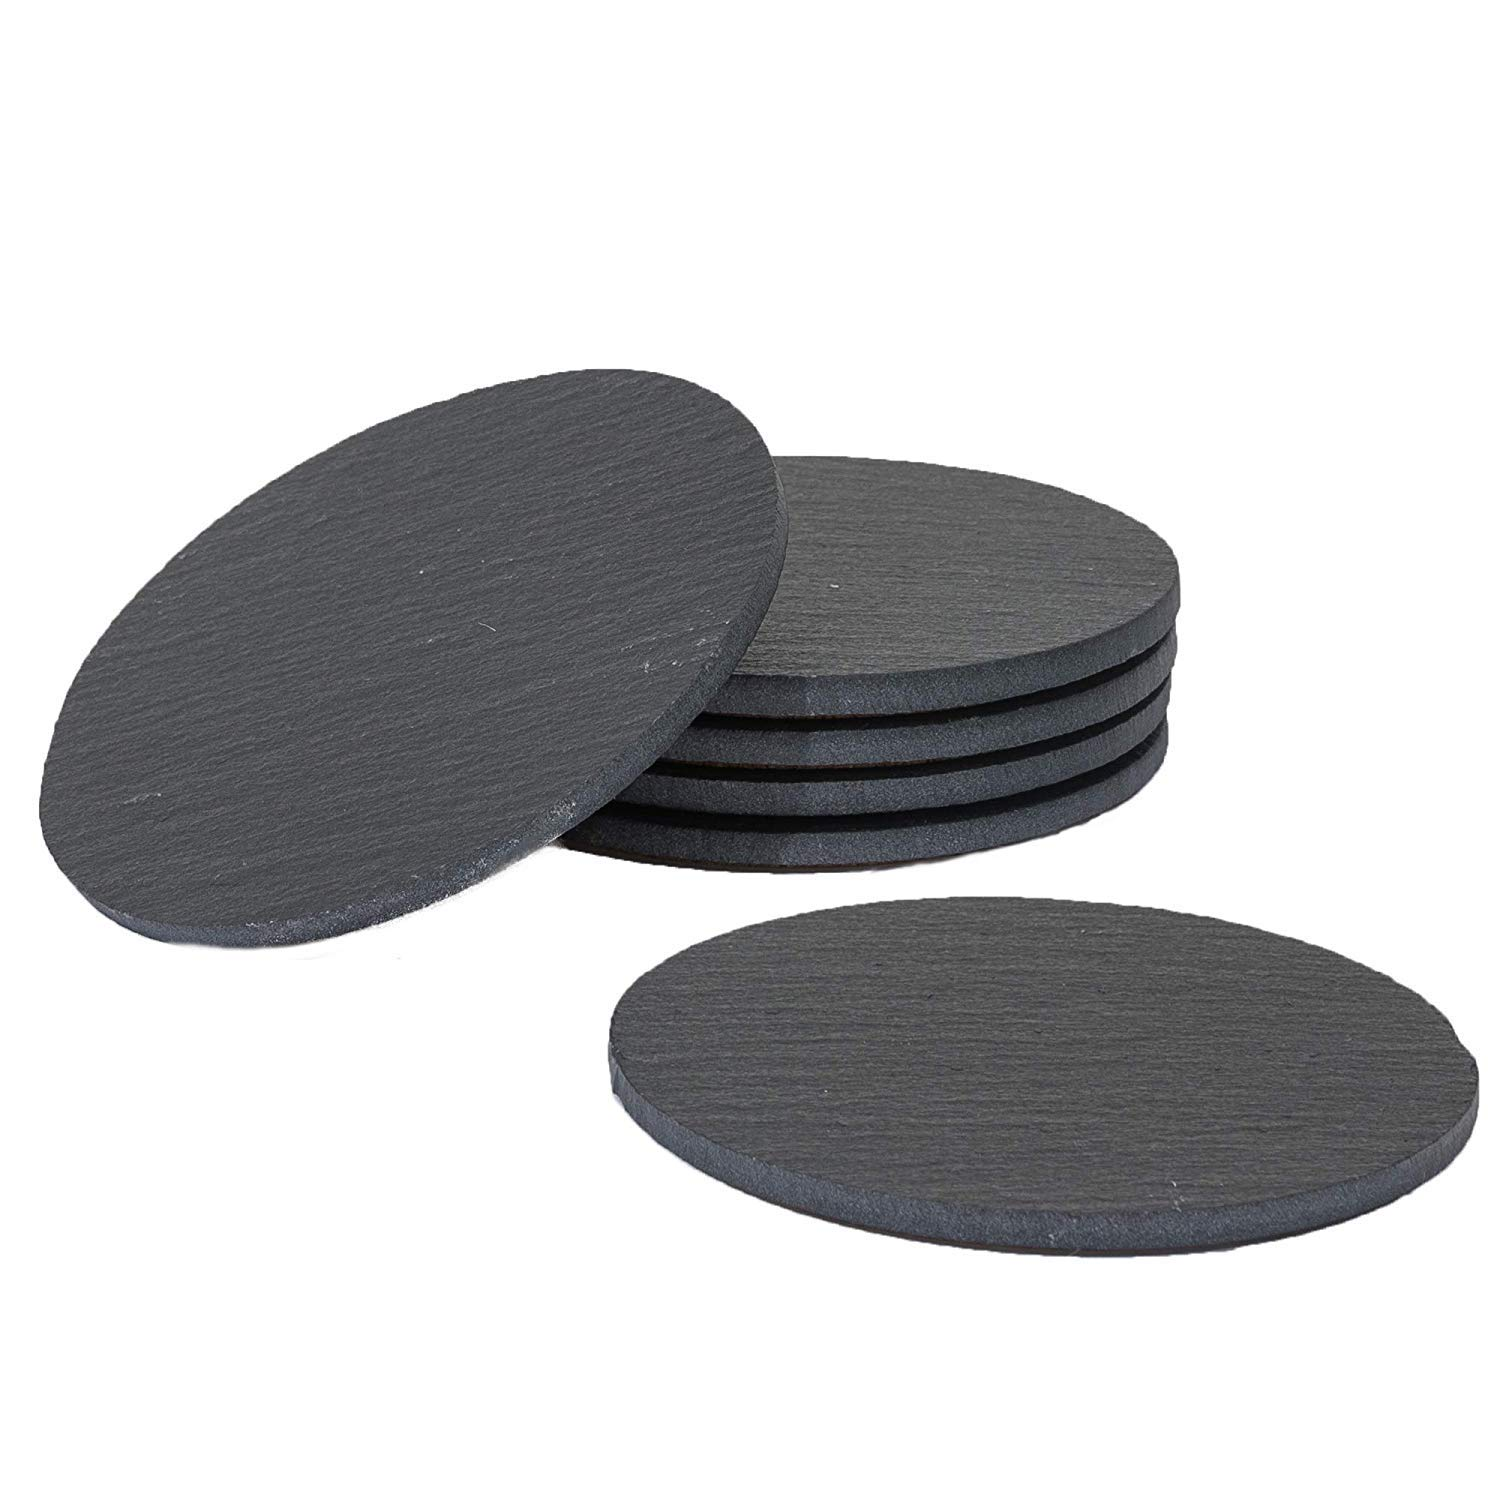 Sona Home Premium Functional Slate Coasters (Set of 6) | Round Black Coasters with Absorbent Top Surface & Non-Slip Cork Bottom | Stylish Stone Coasters for All Types of Glasses & Mugs | 11cm/4.3''